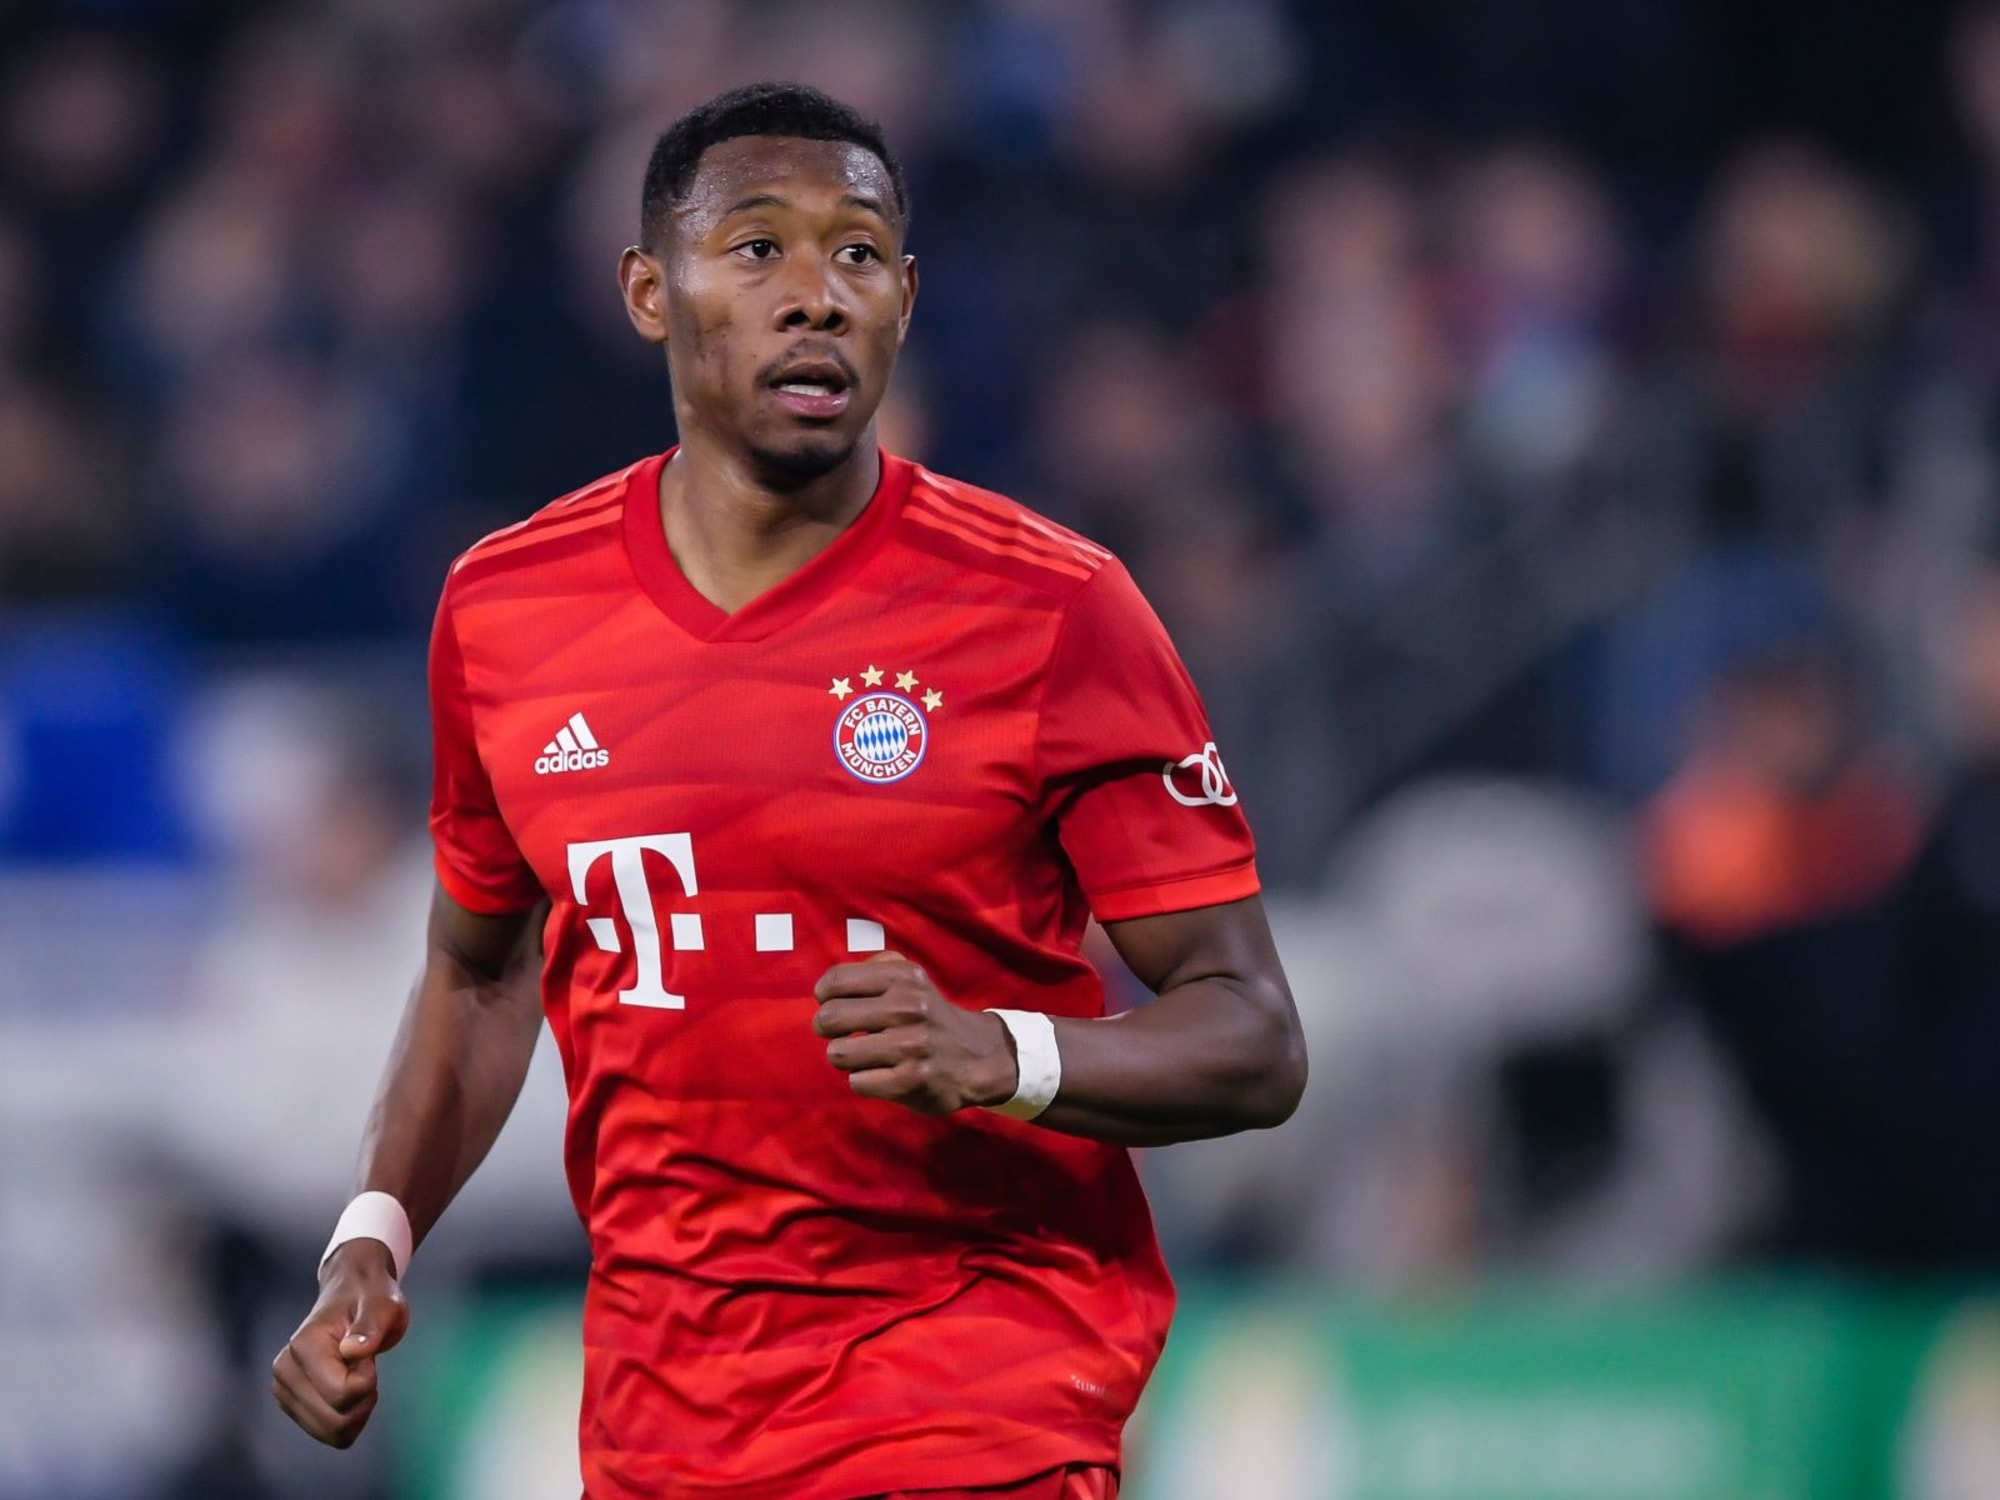 Real Madrid David Alaba Would Be A Midfield Option